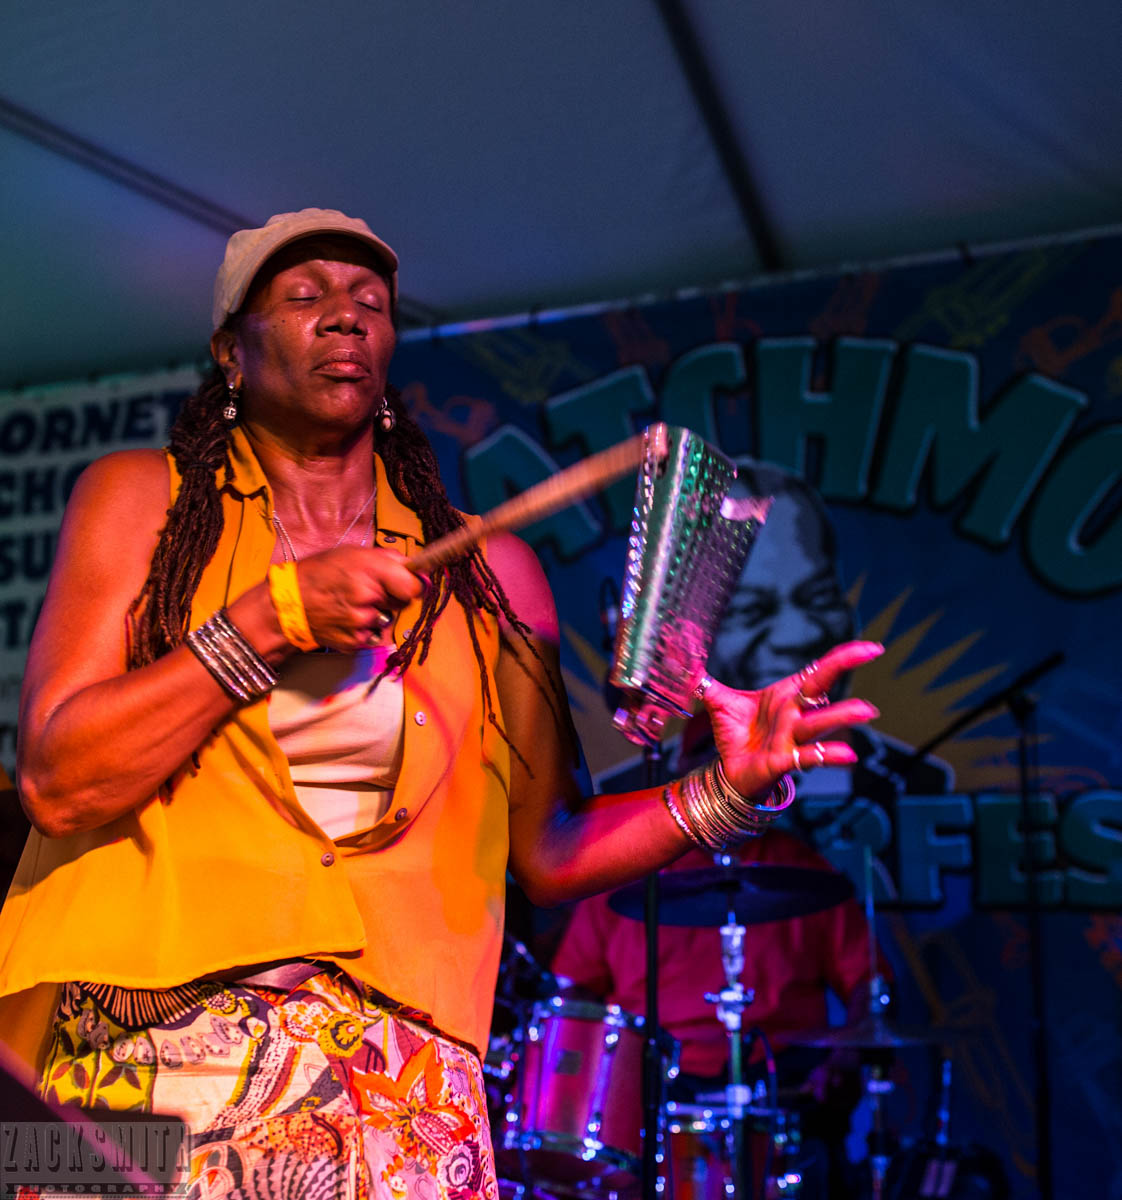 Juggling and playing a cowbell is how Charmaine Neville STARTS her set...not surprised here.